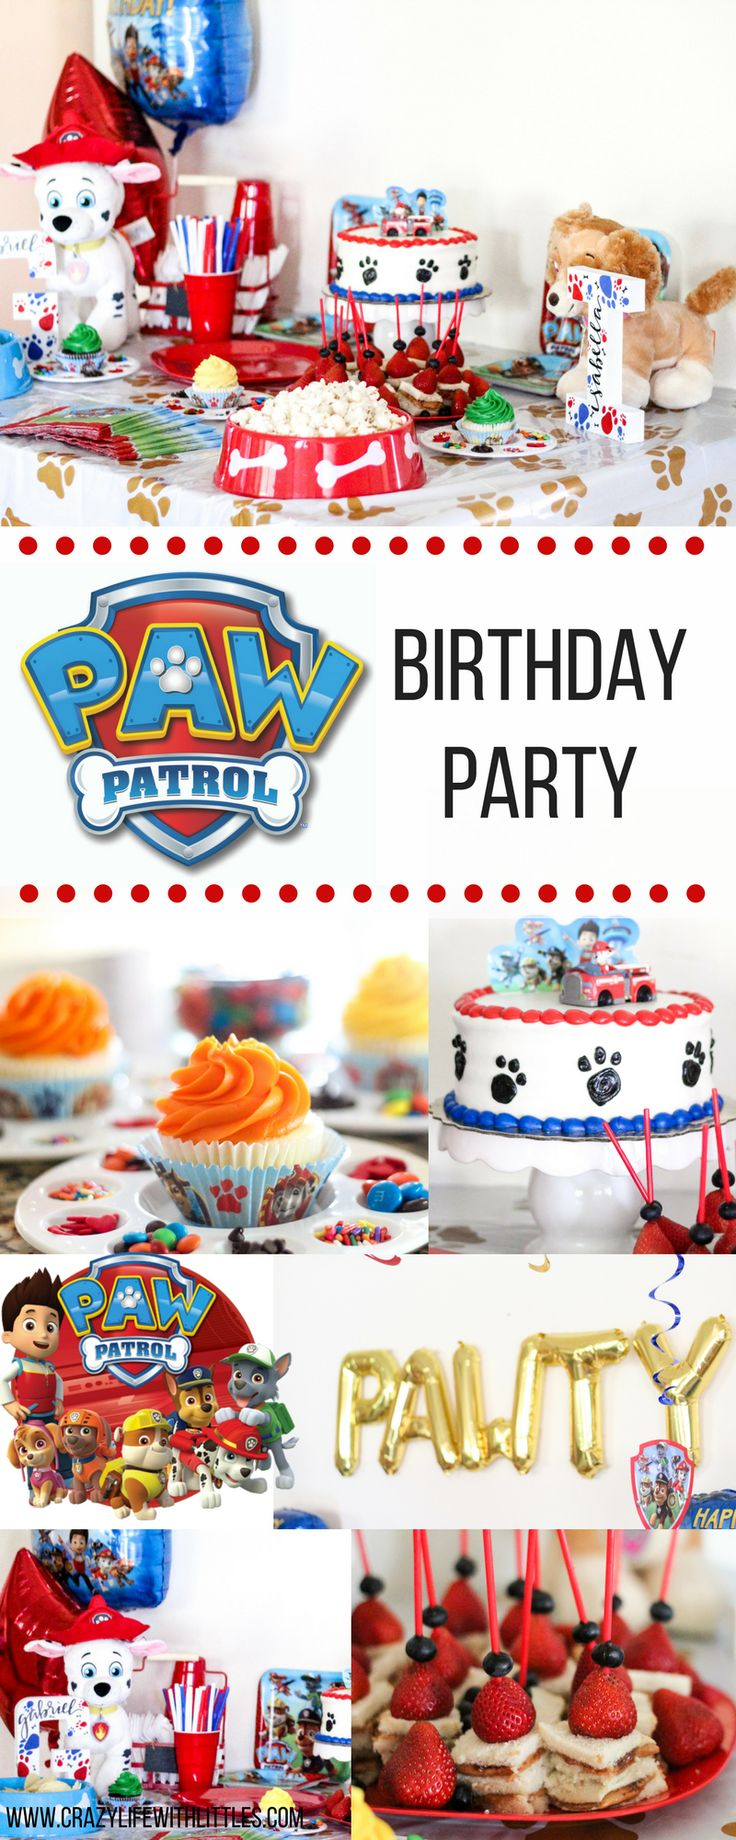 #pawpatrol #pawpatrolparty #pawpatrolbirthday paw patrol birthday party, paw patrol supplies amazon, paw patrol party supplies target, paw patrol party supplies walmart, paw patrol dog bowls, paw patrol decorations, paw patrol ideas, paw patrol cake, paw patrol birthday party for boys, paw patrol birthday party for girls